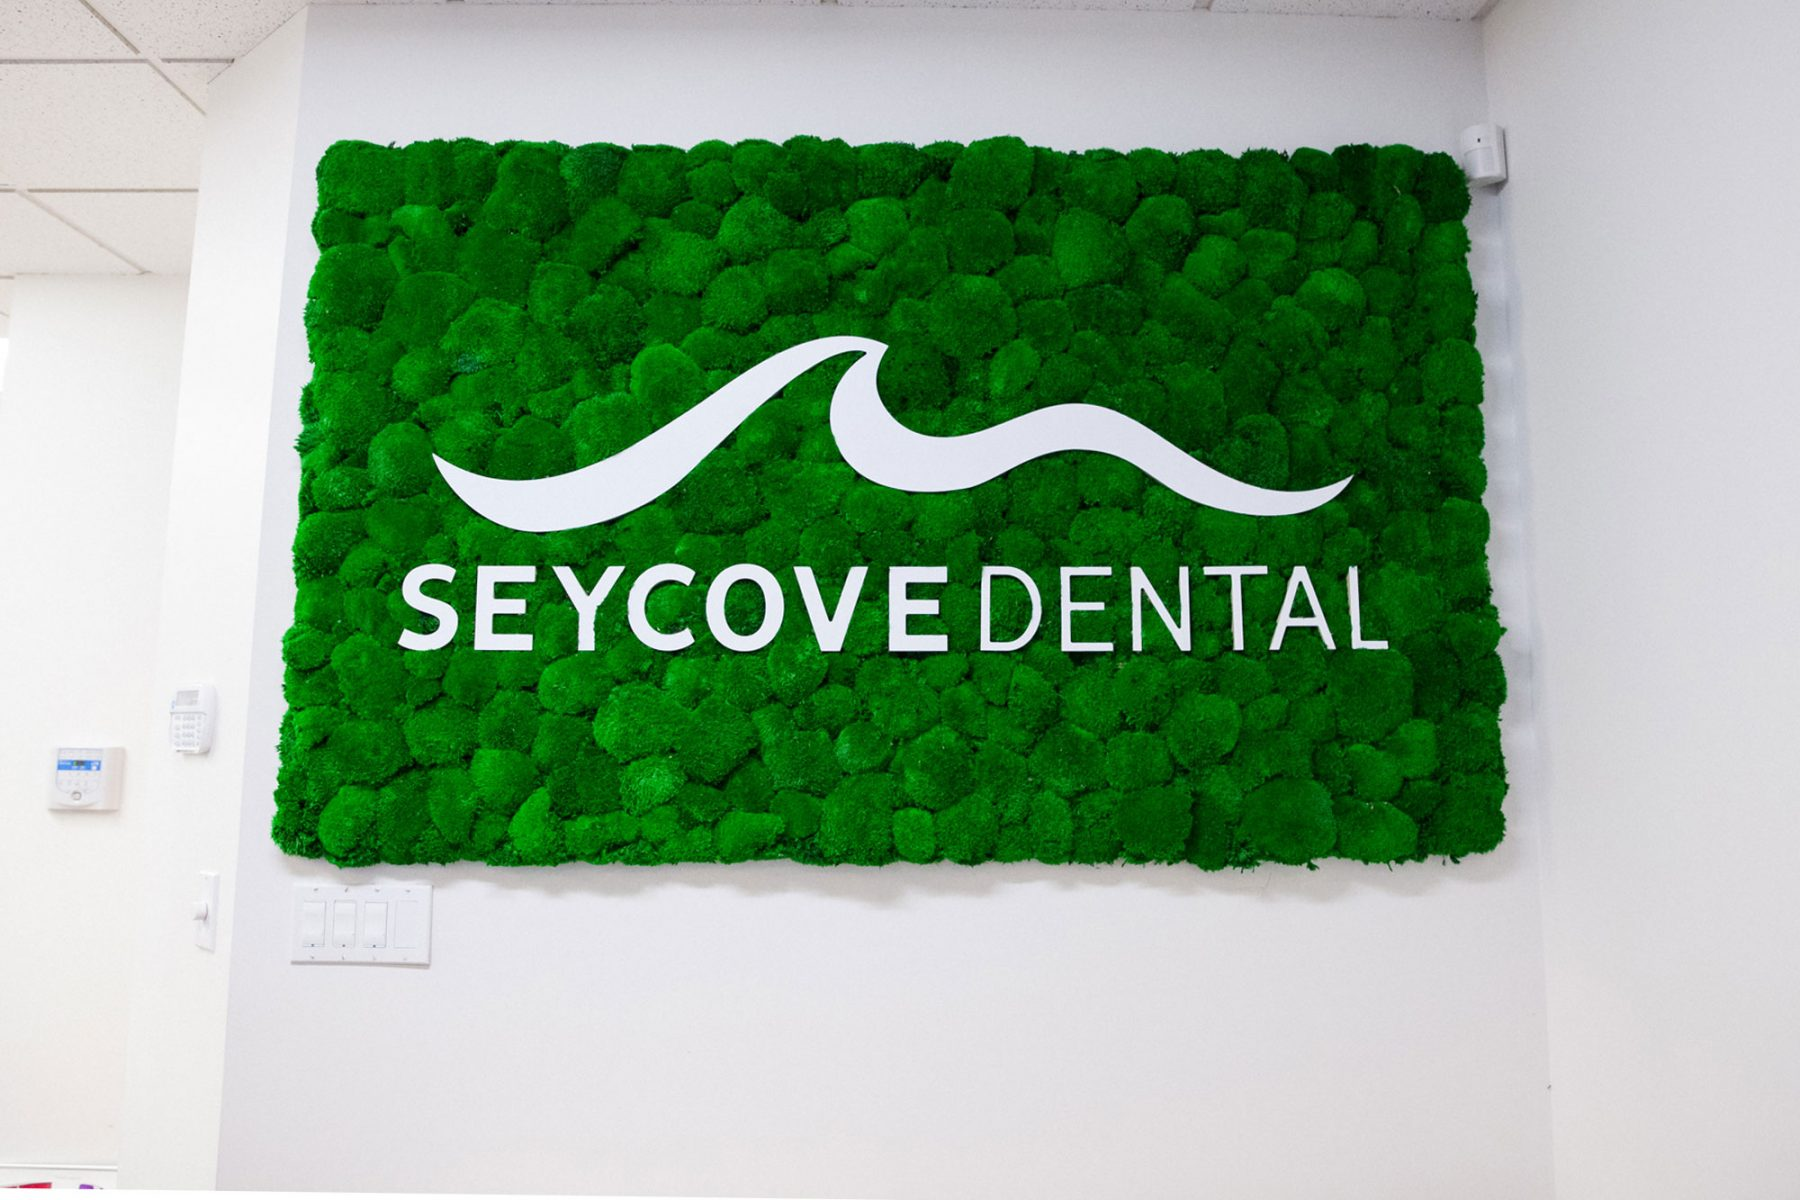 front lobby sign that reads Seycove Dental in white on a green background